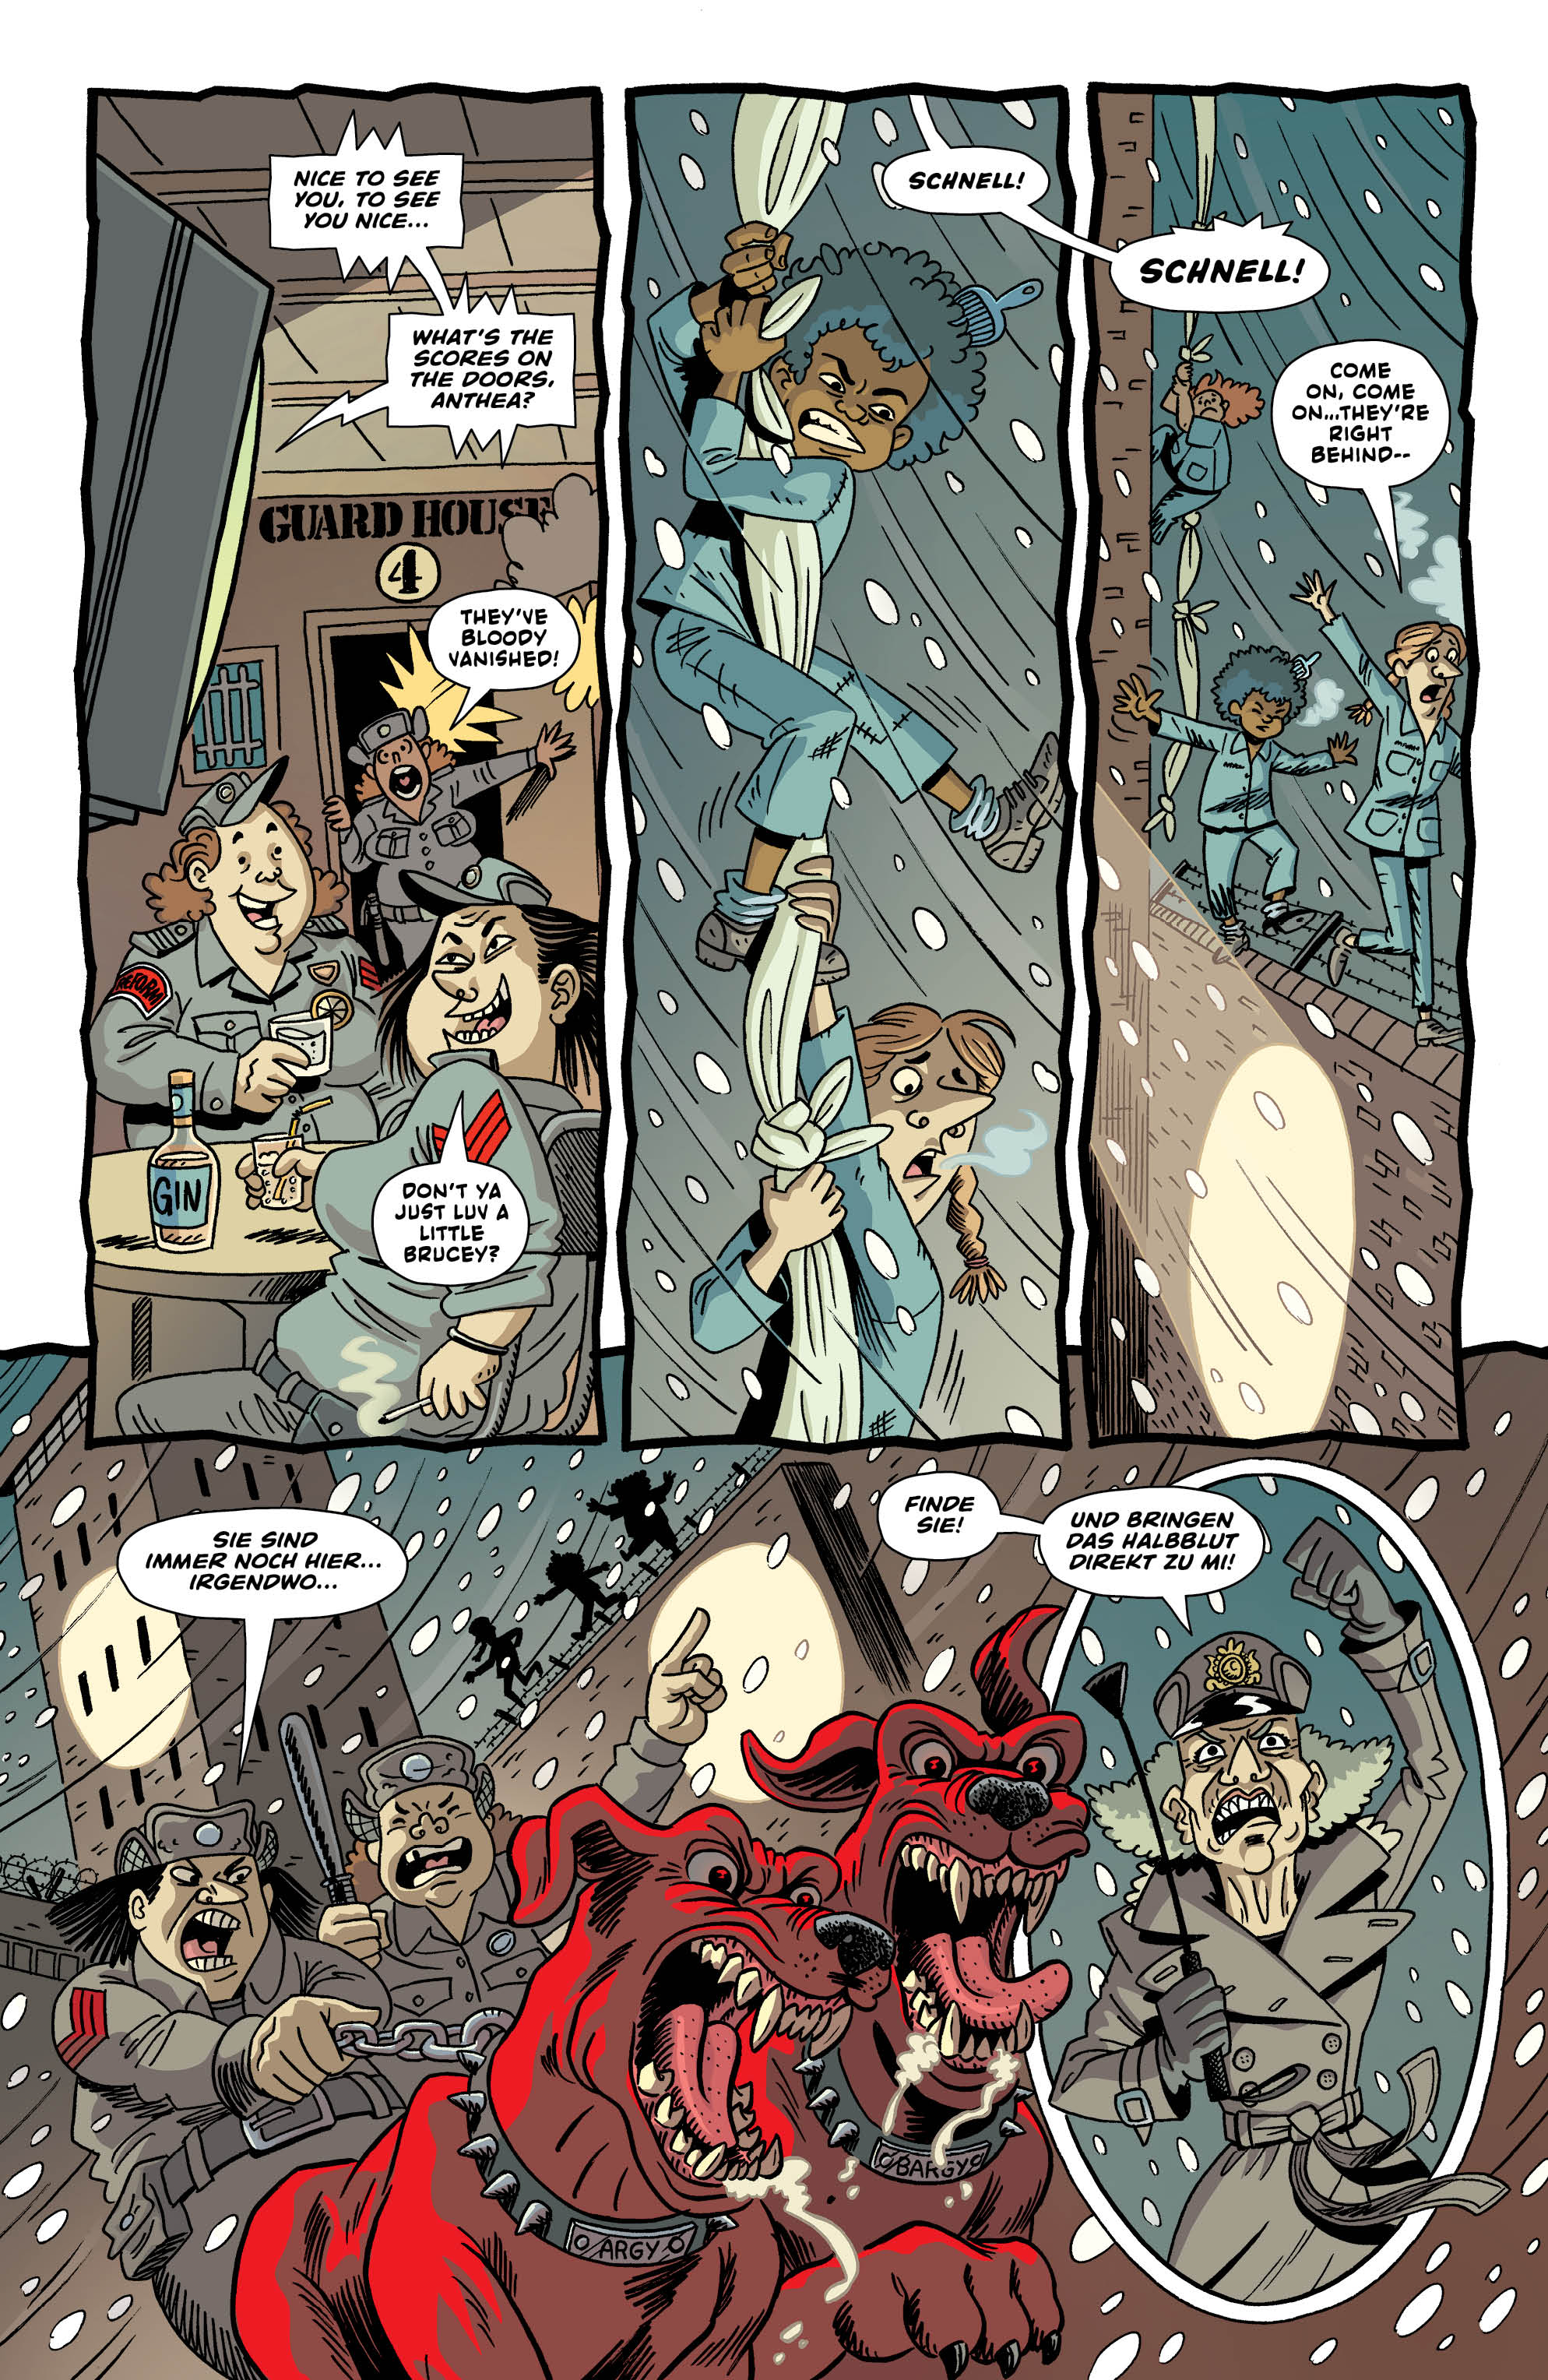 LAST GANG IN TOWN #4 page 5